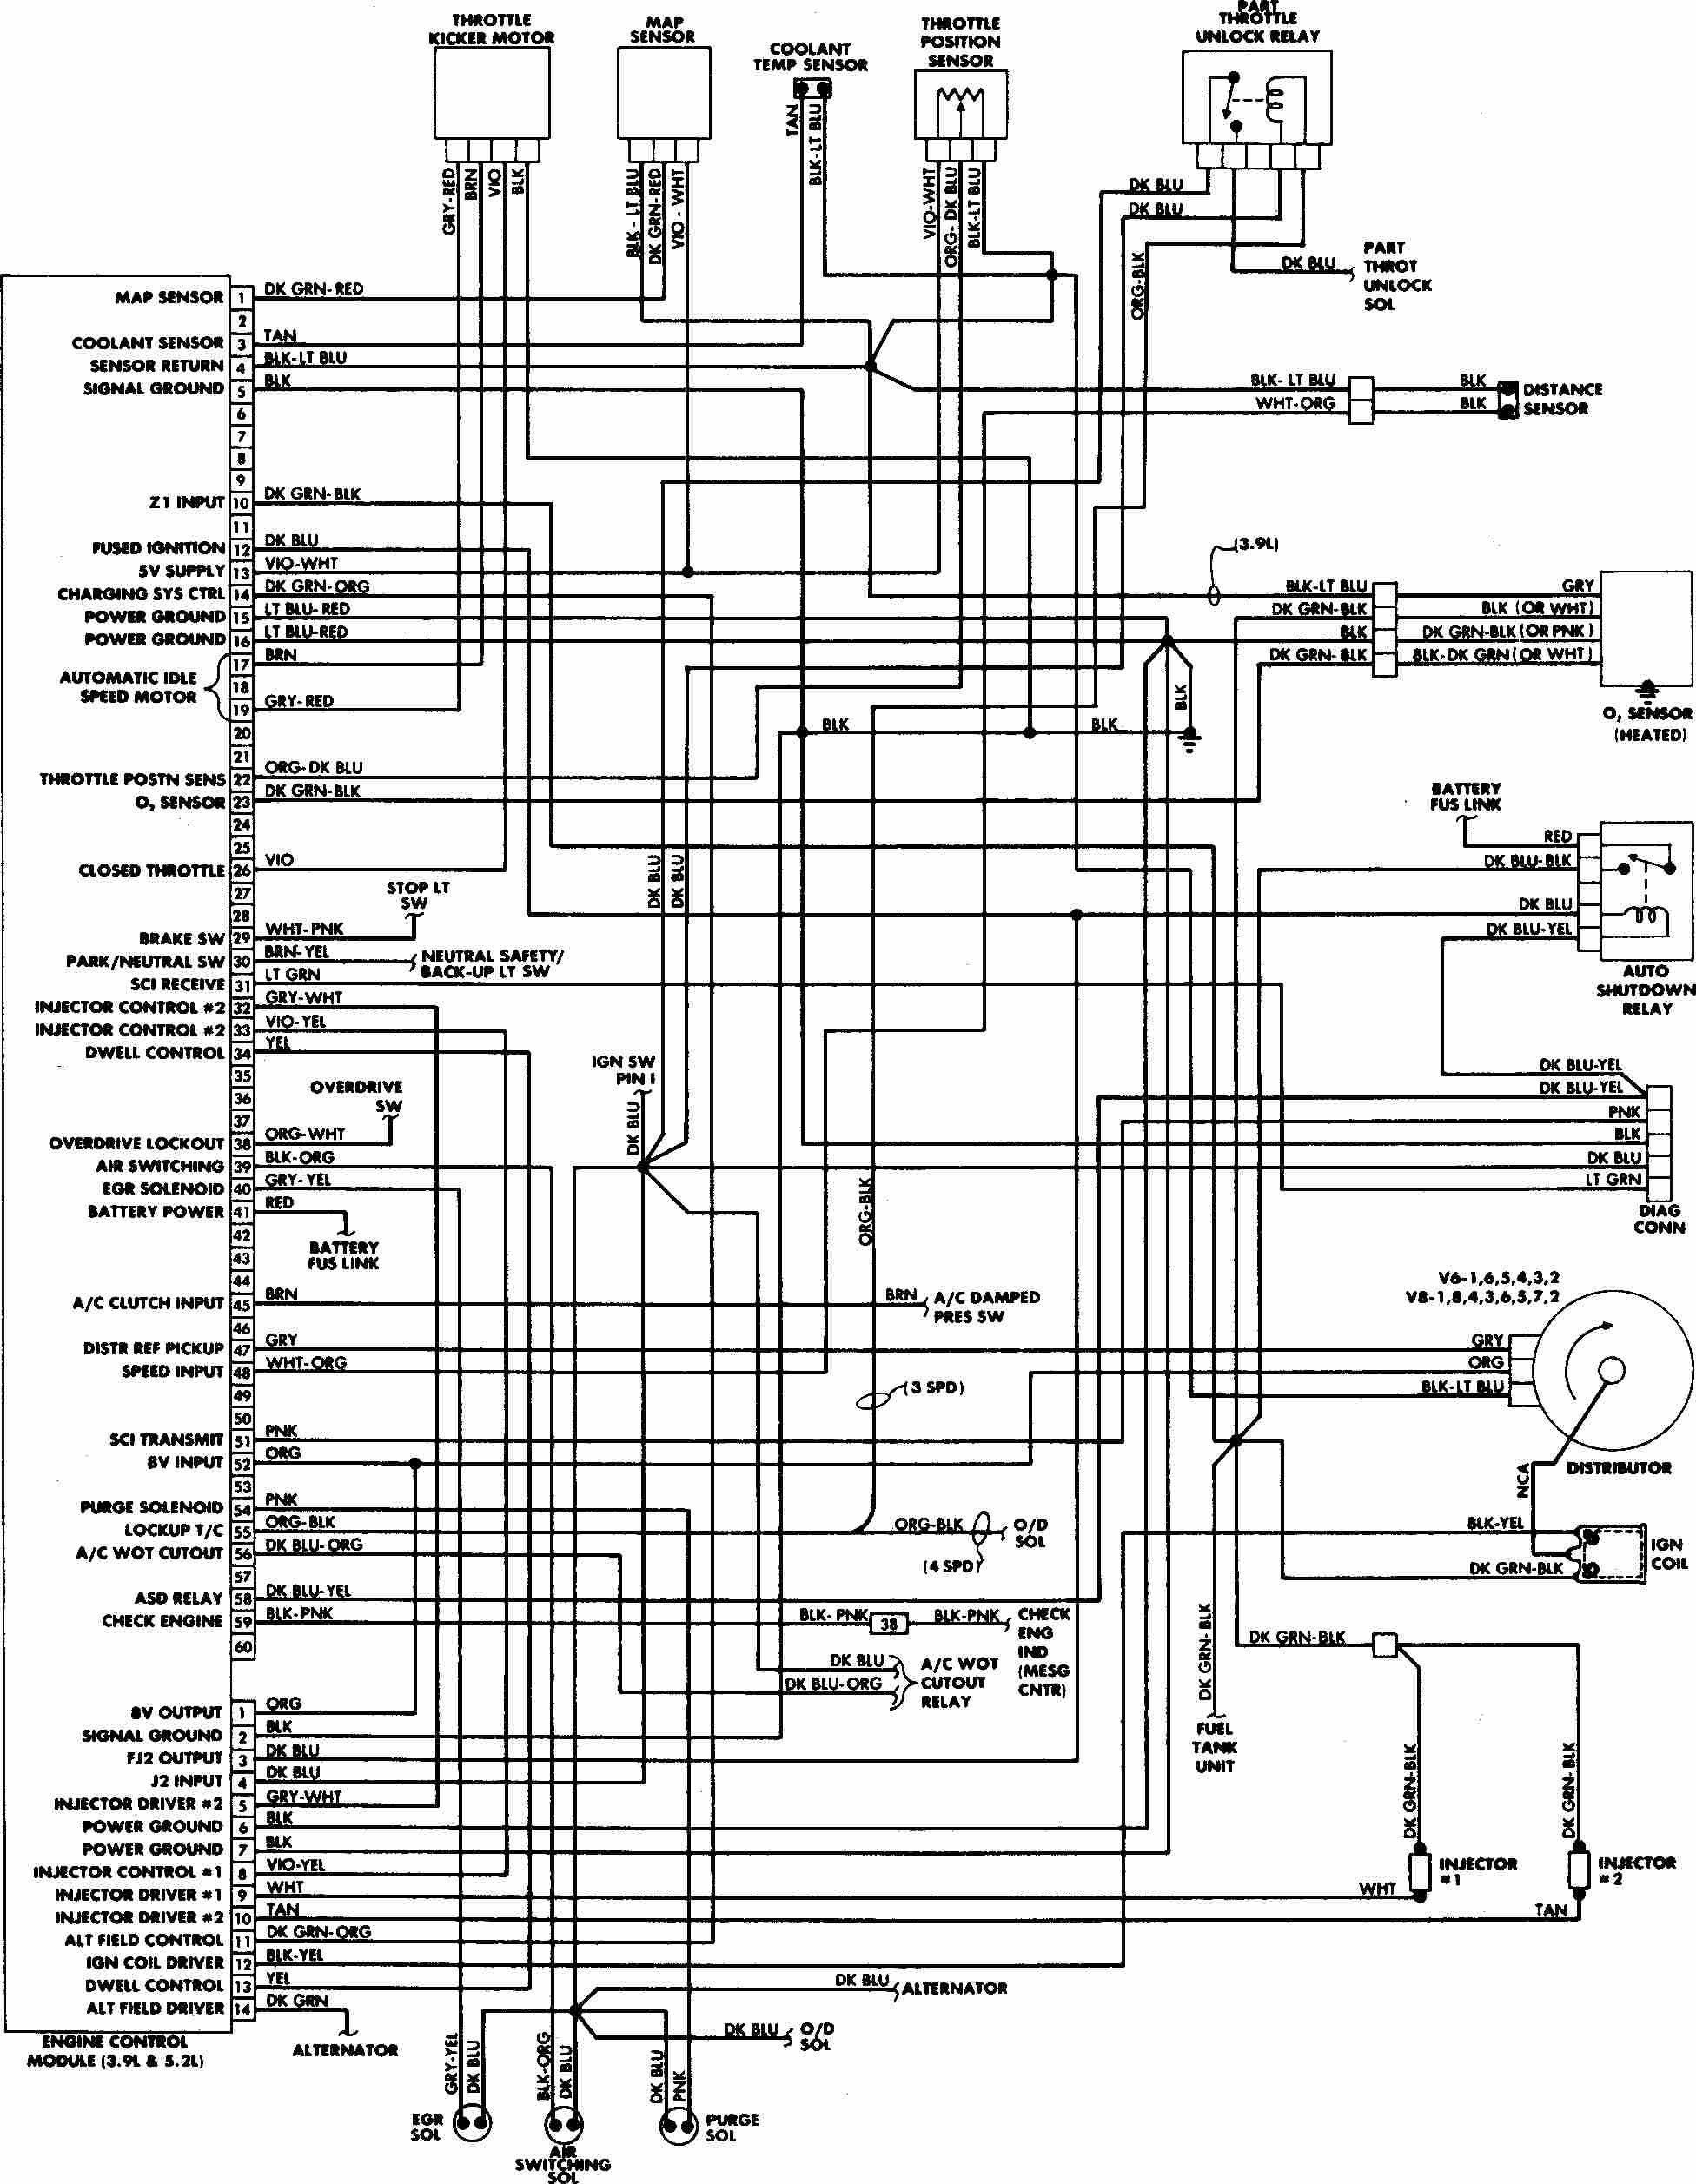 30 Unique Dodge Neon Starter Wiring Diagram in 2020